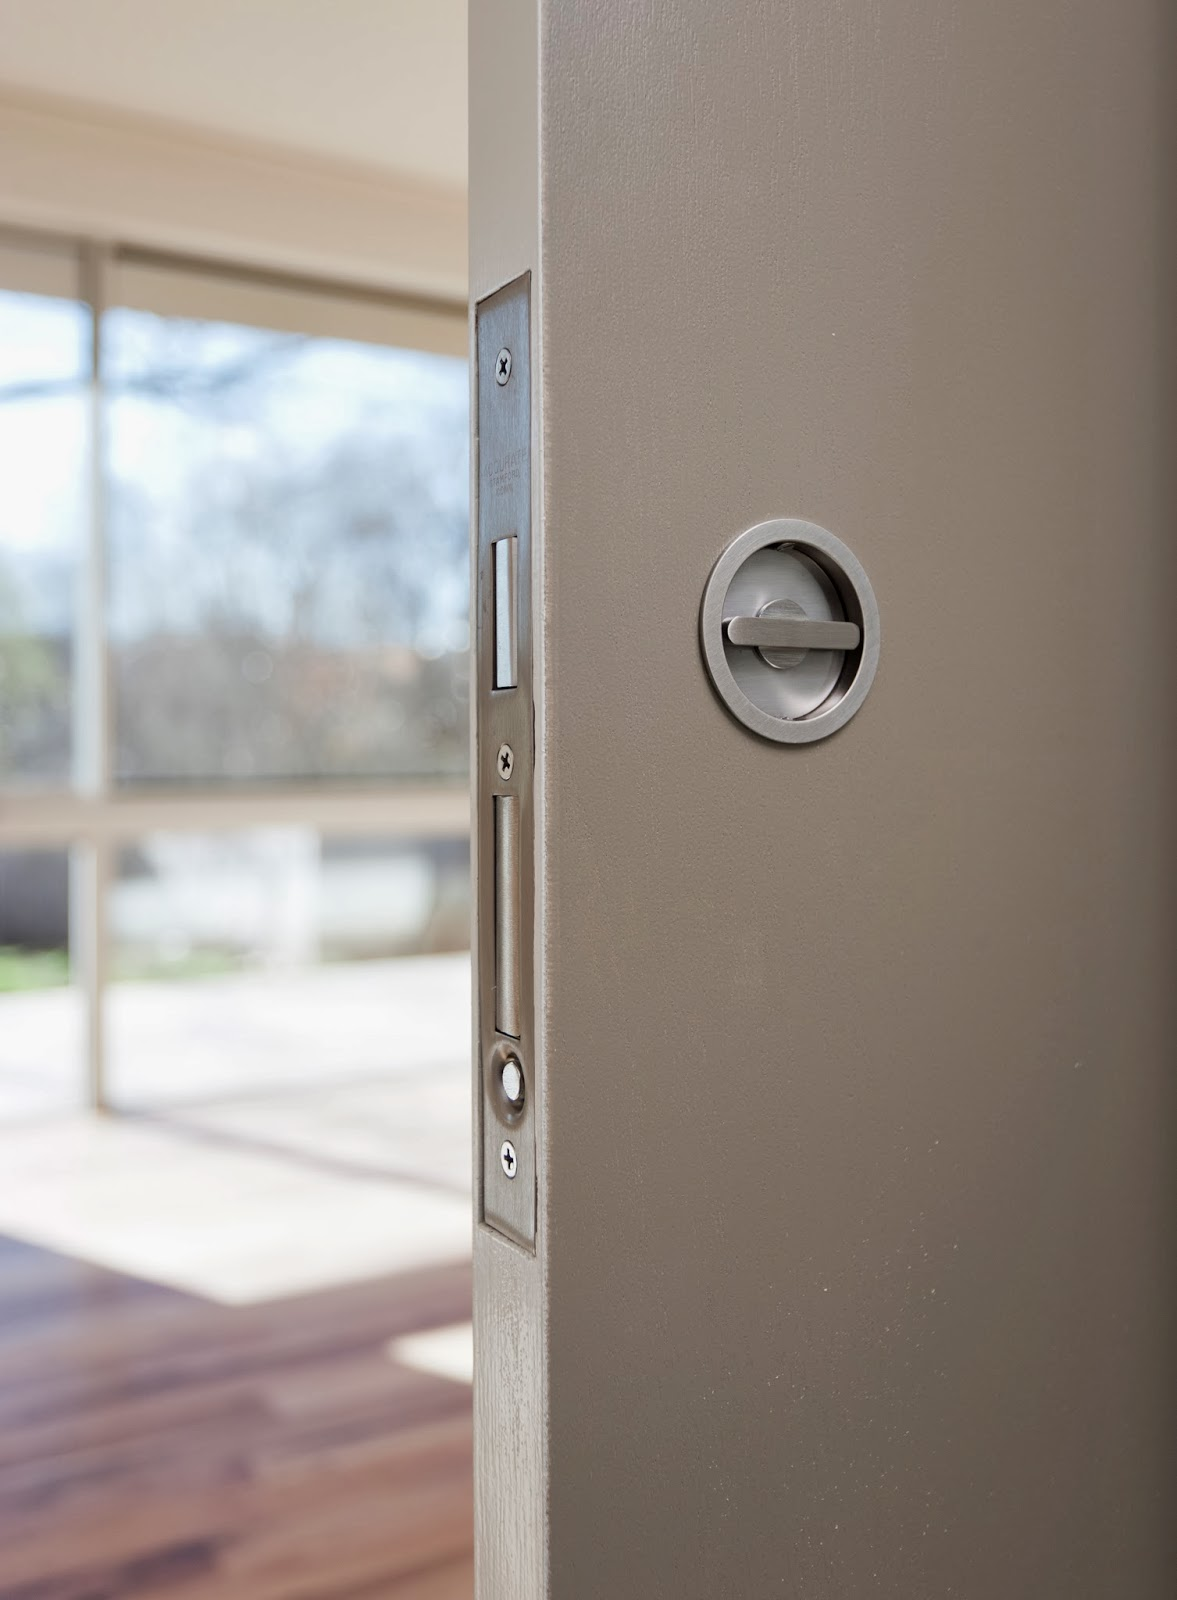 Pocket door bathroom lock - These Pocket Door Locks Are So Crisp They Are Worth The Premium You Get What You Pay For When It Comes To Hardware And These Are Money